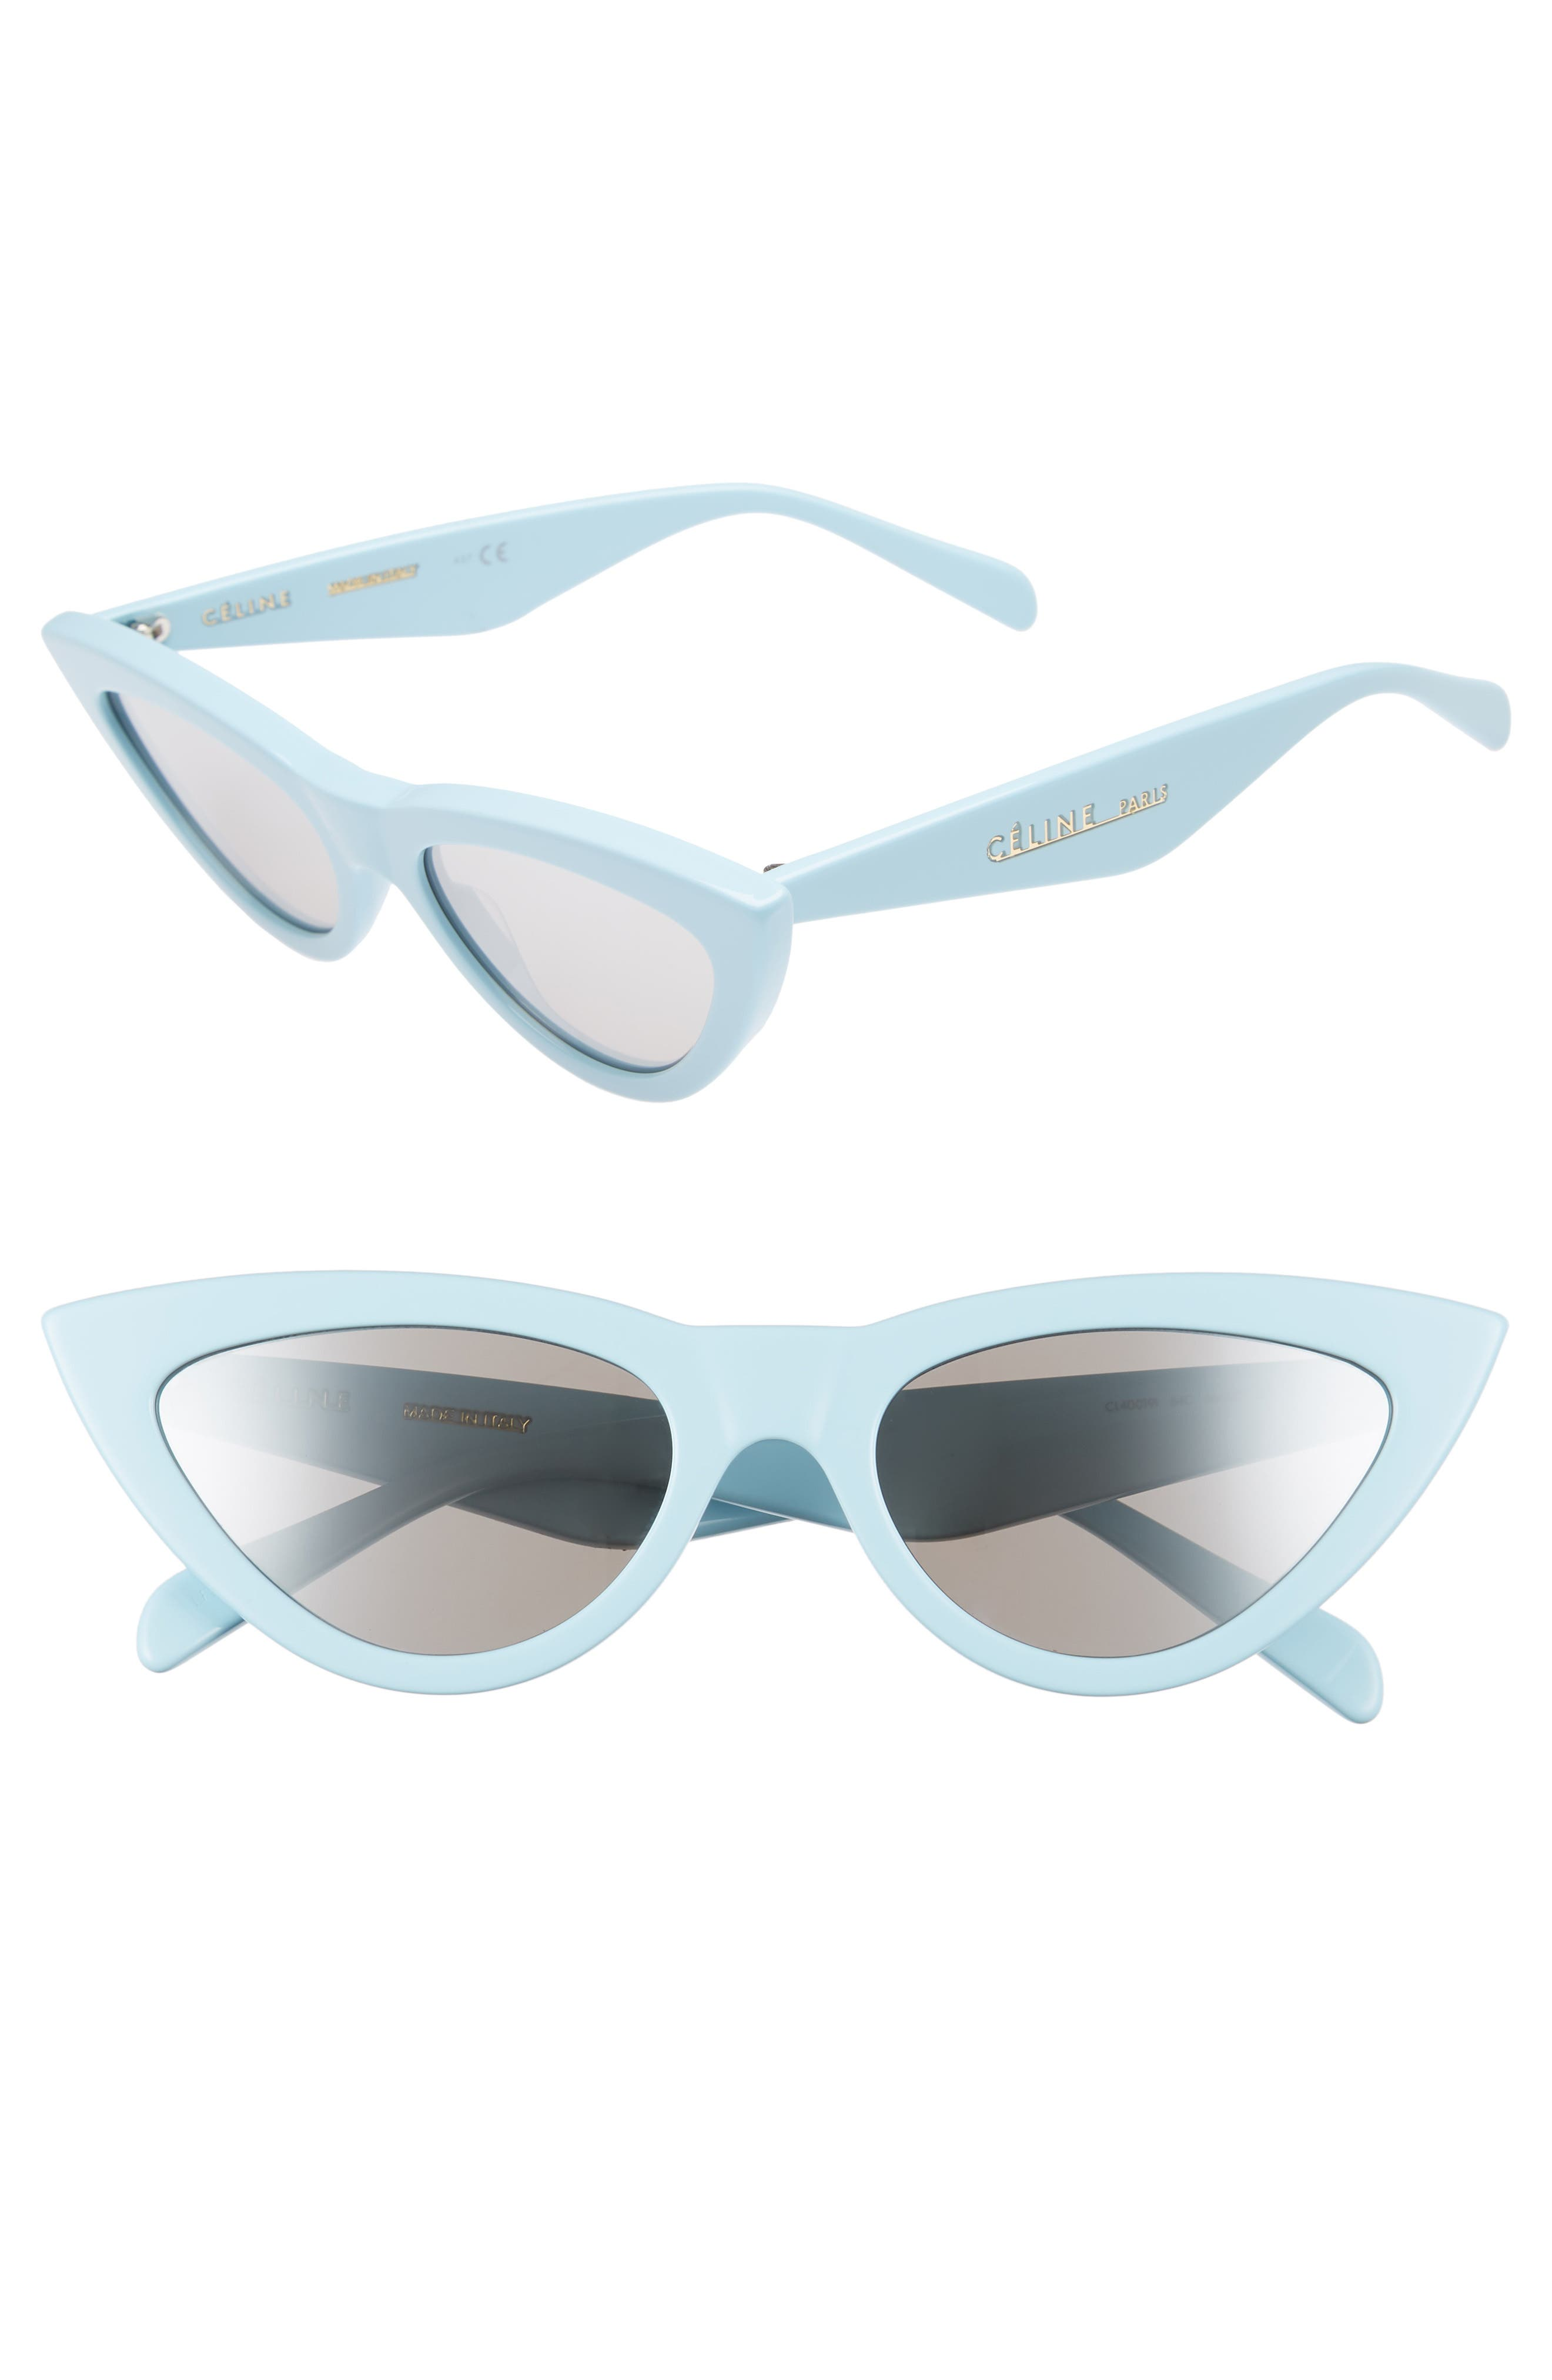 56mm Cat Eye Sunglasses,                         Main,                         color, Light Blue/ Silver Flash